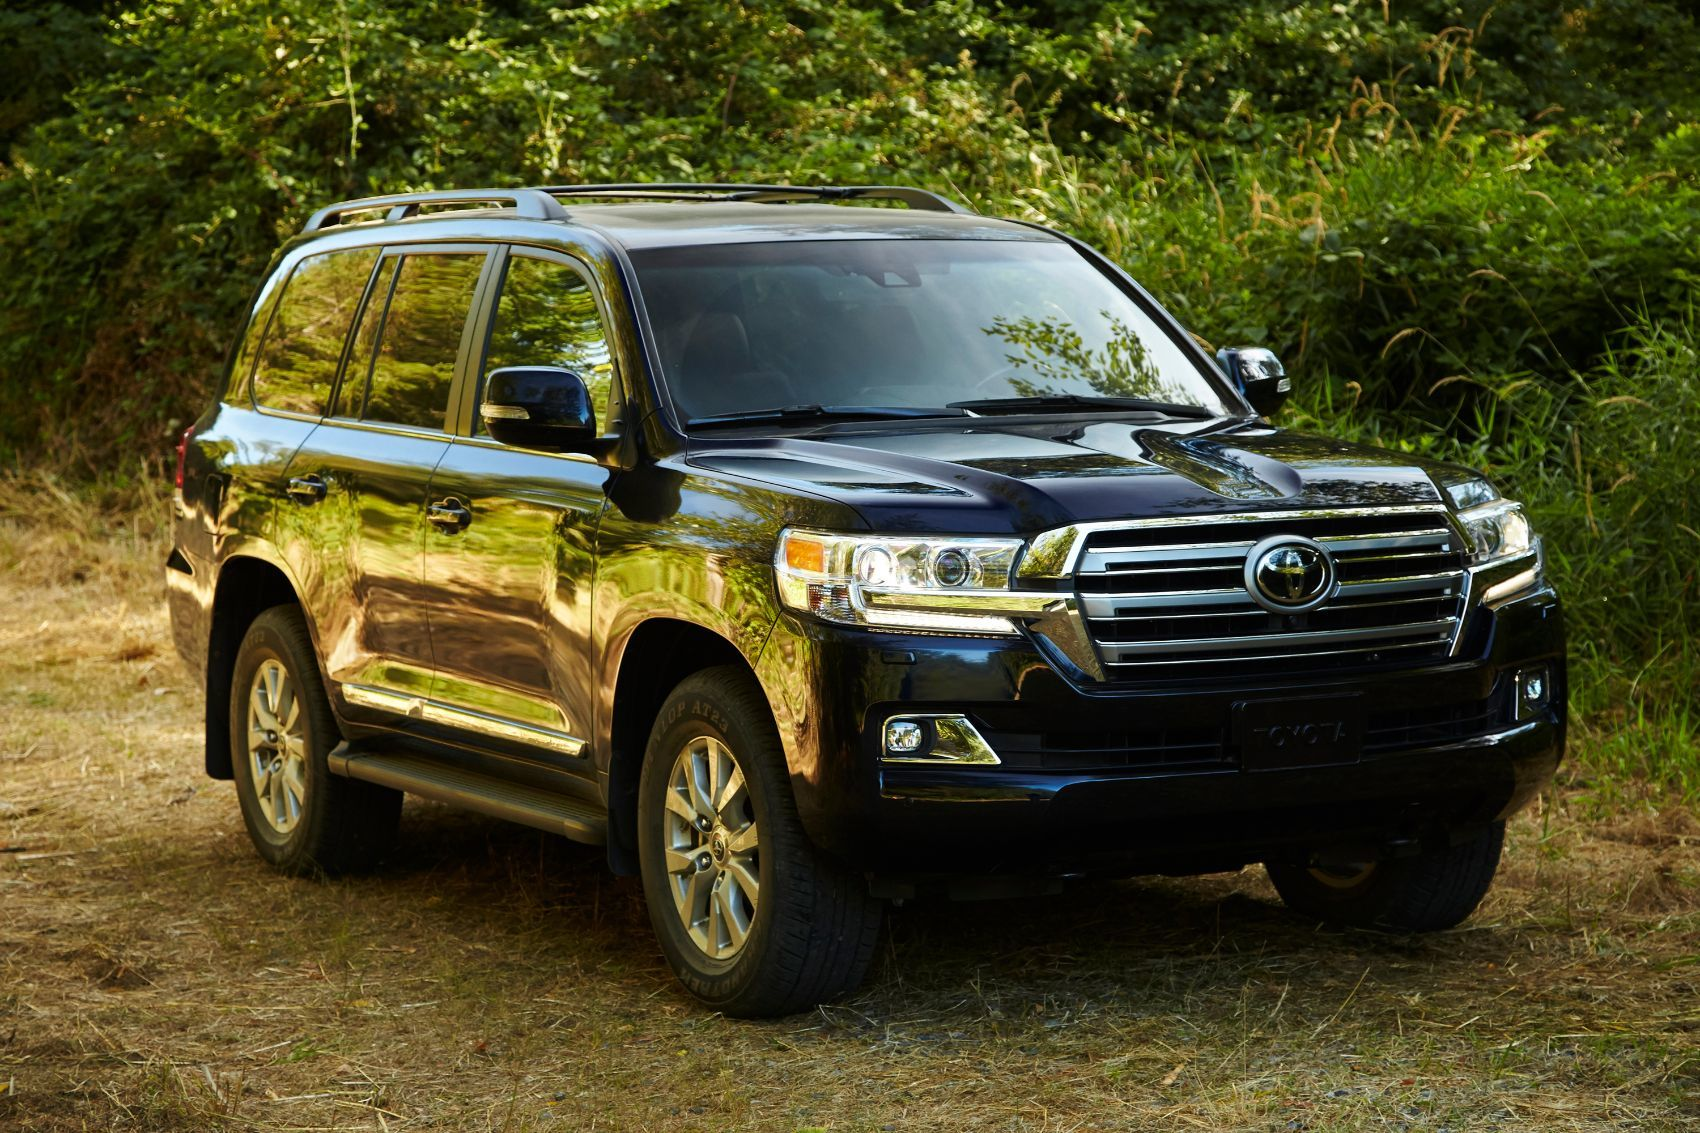 2019 Toyota Land Cruiser Review: When Roads Are Optional